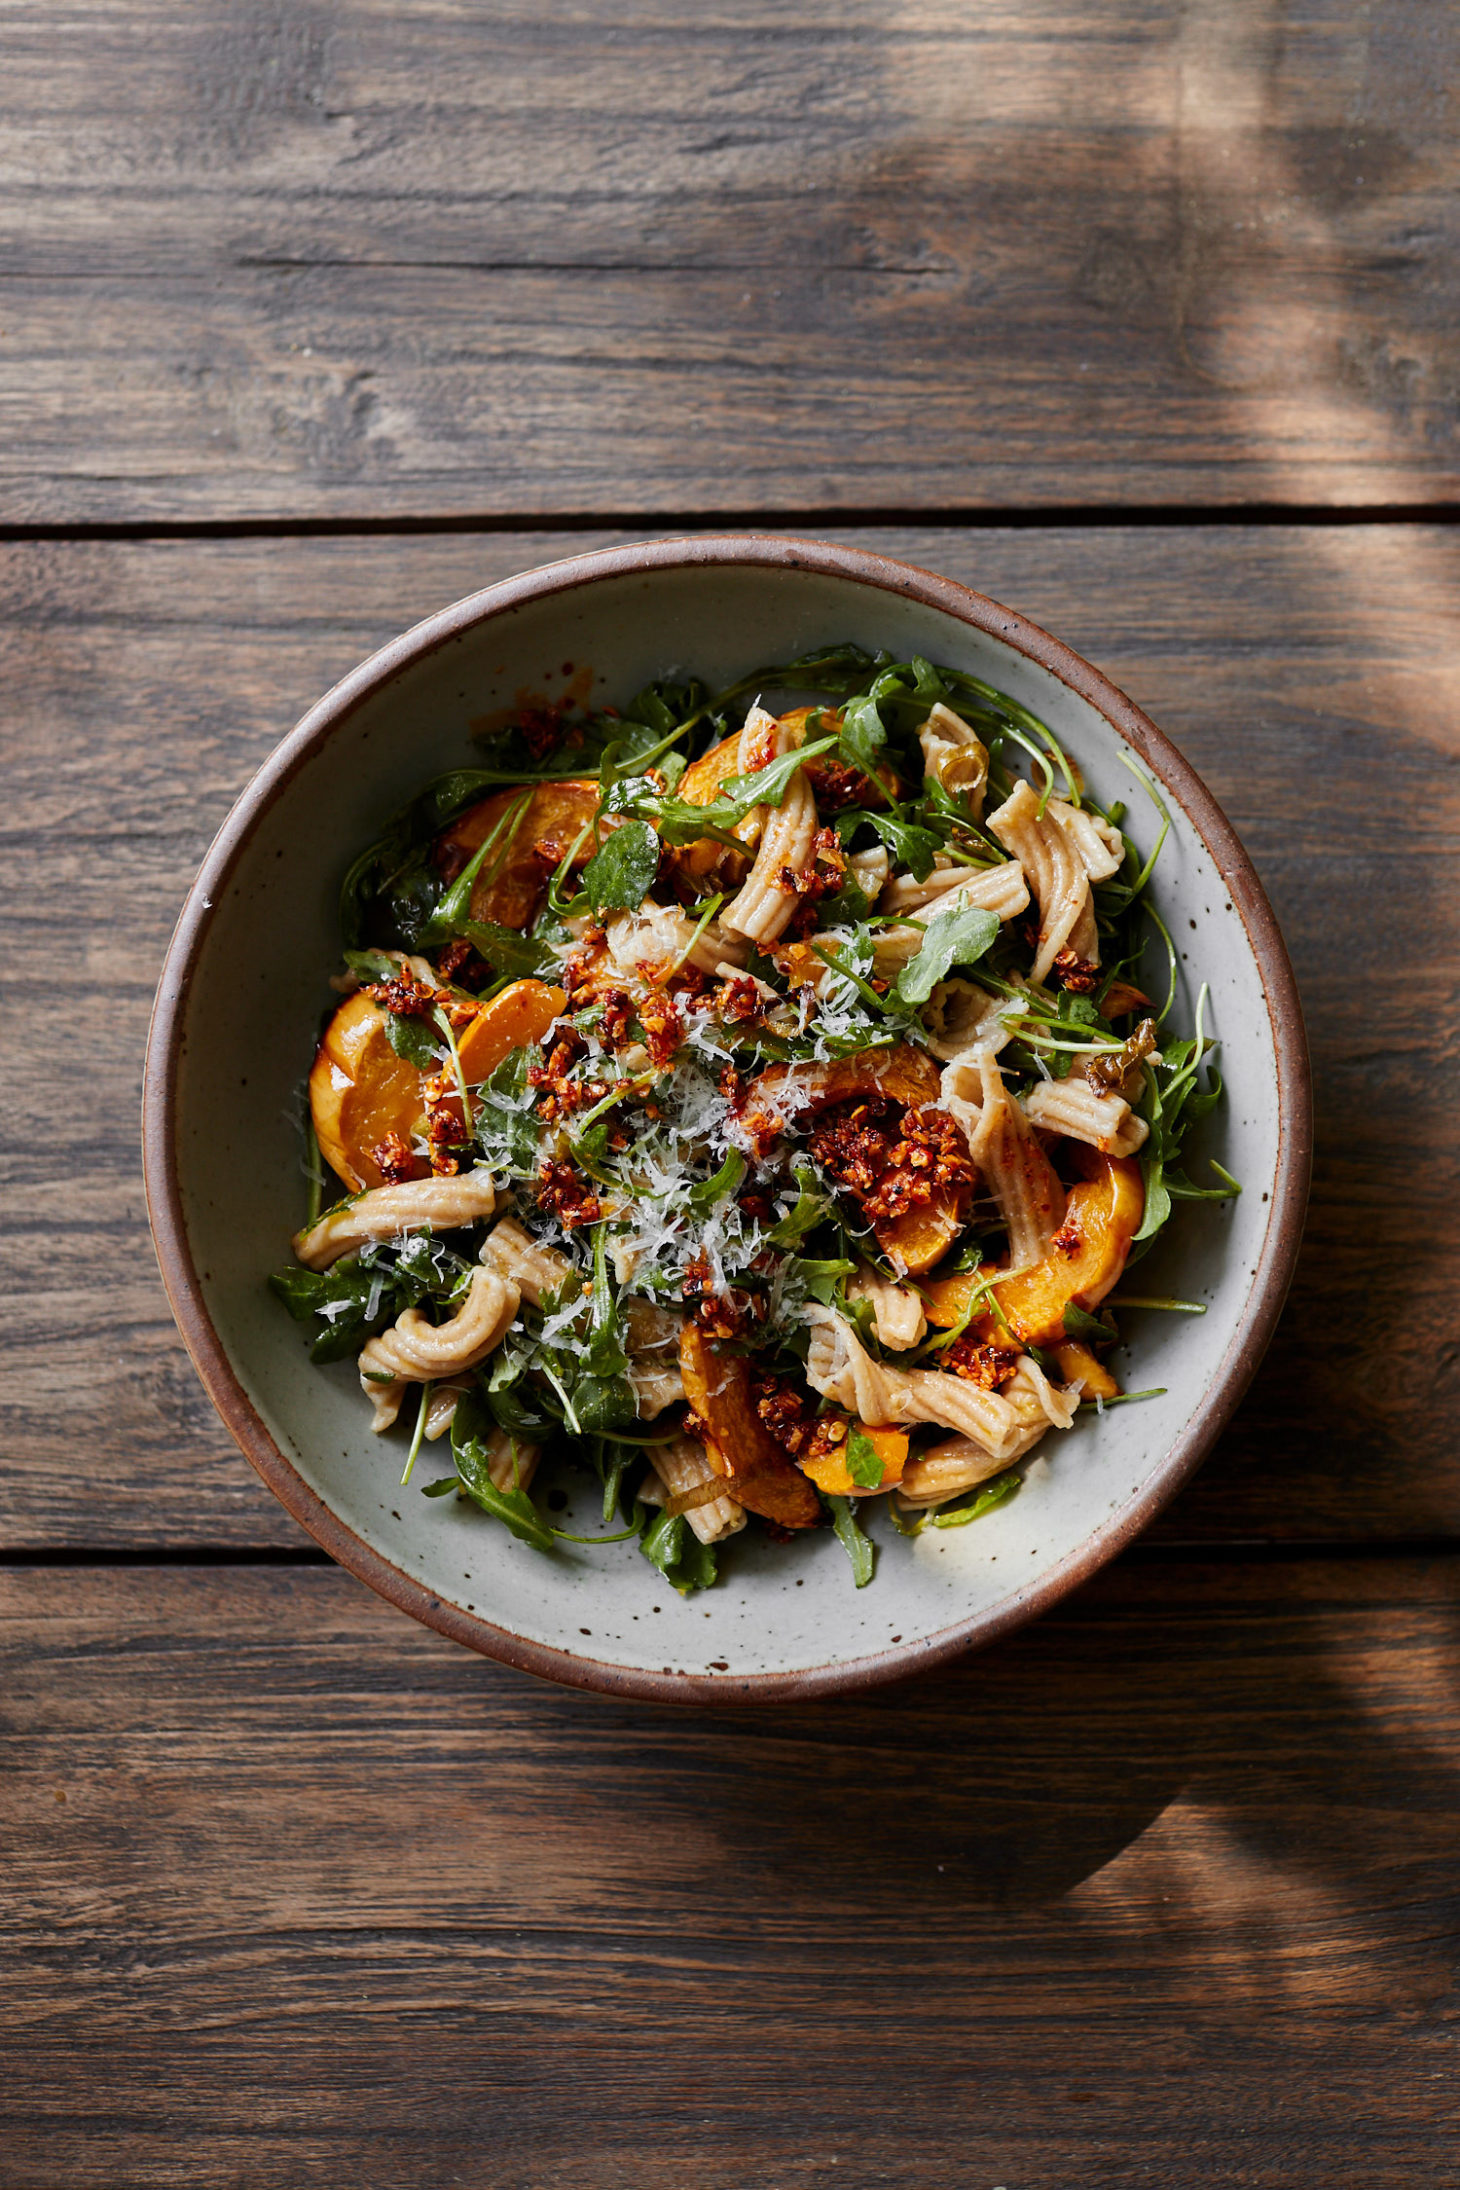 Image of a grey bowl on a light wood table filled with arugula, delicata squash, and pasta.